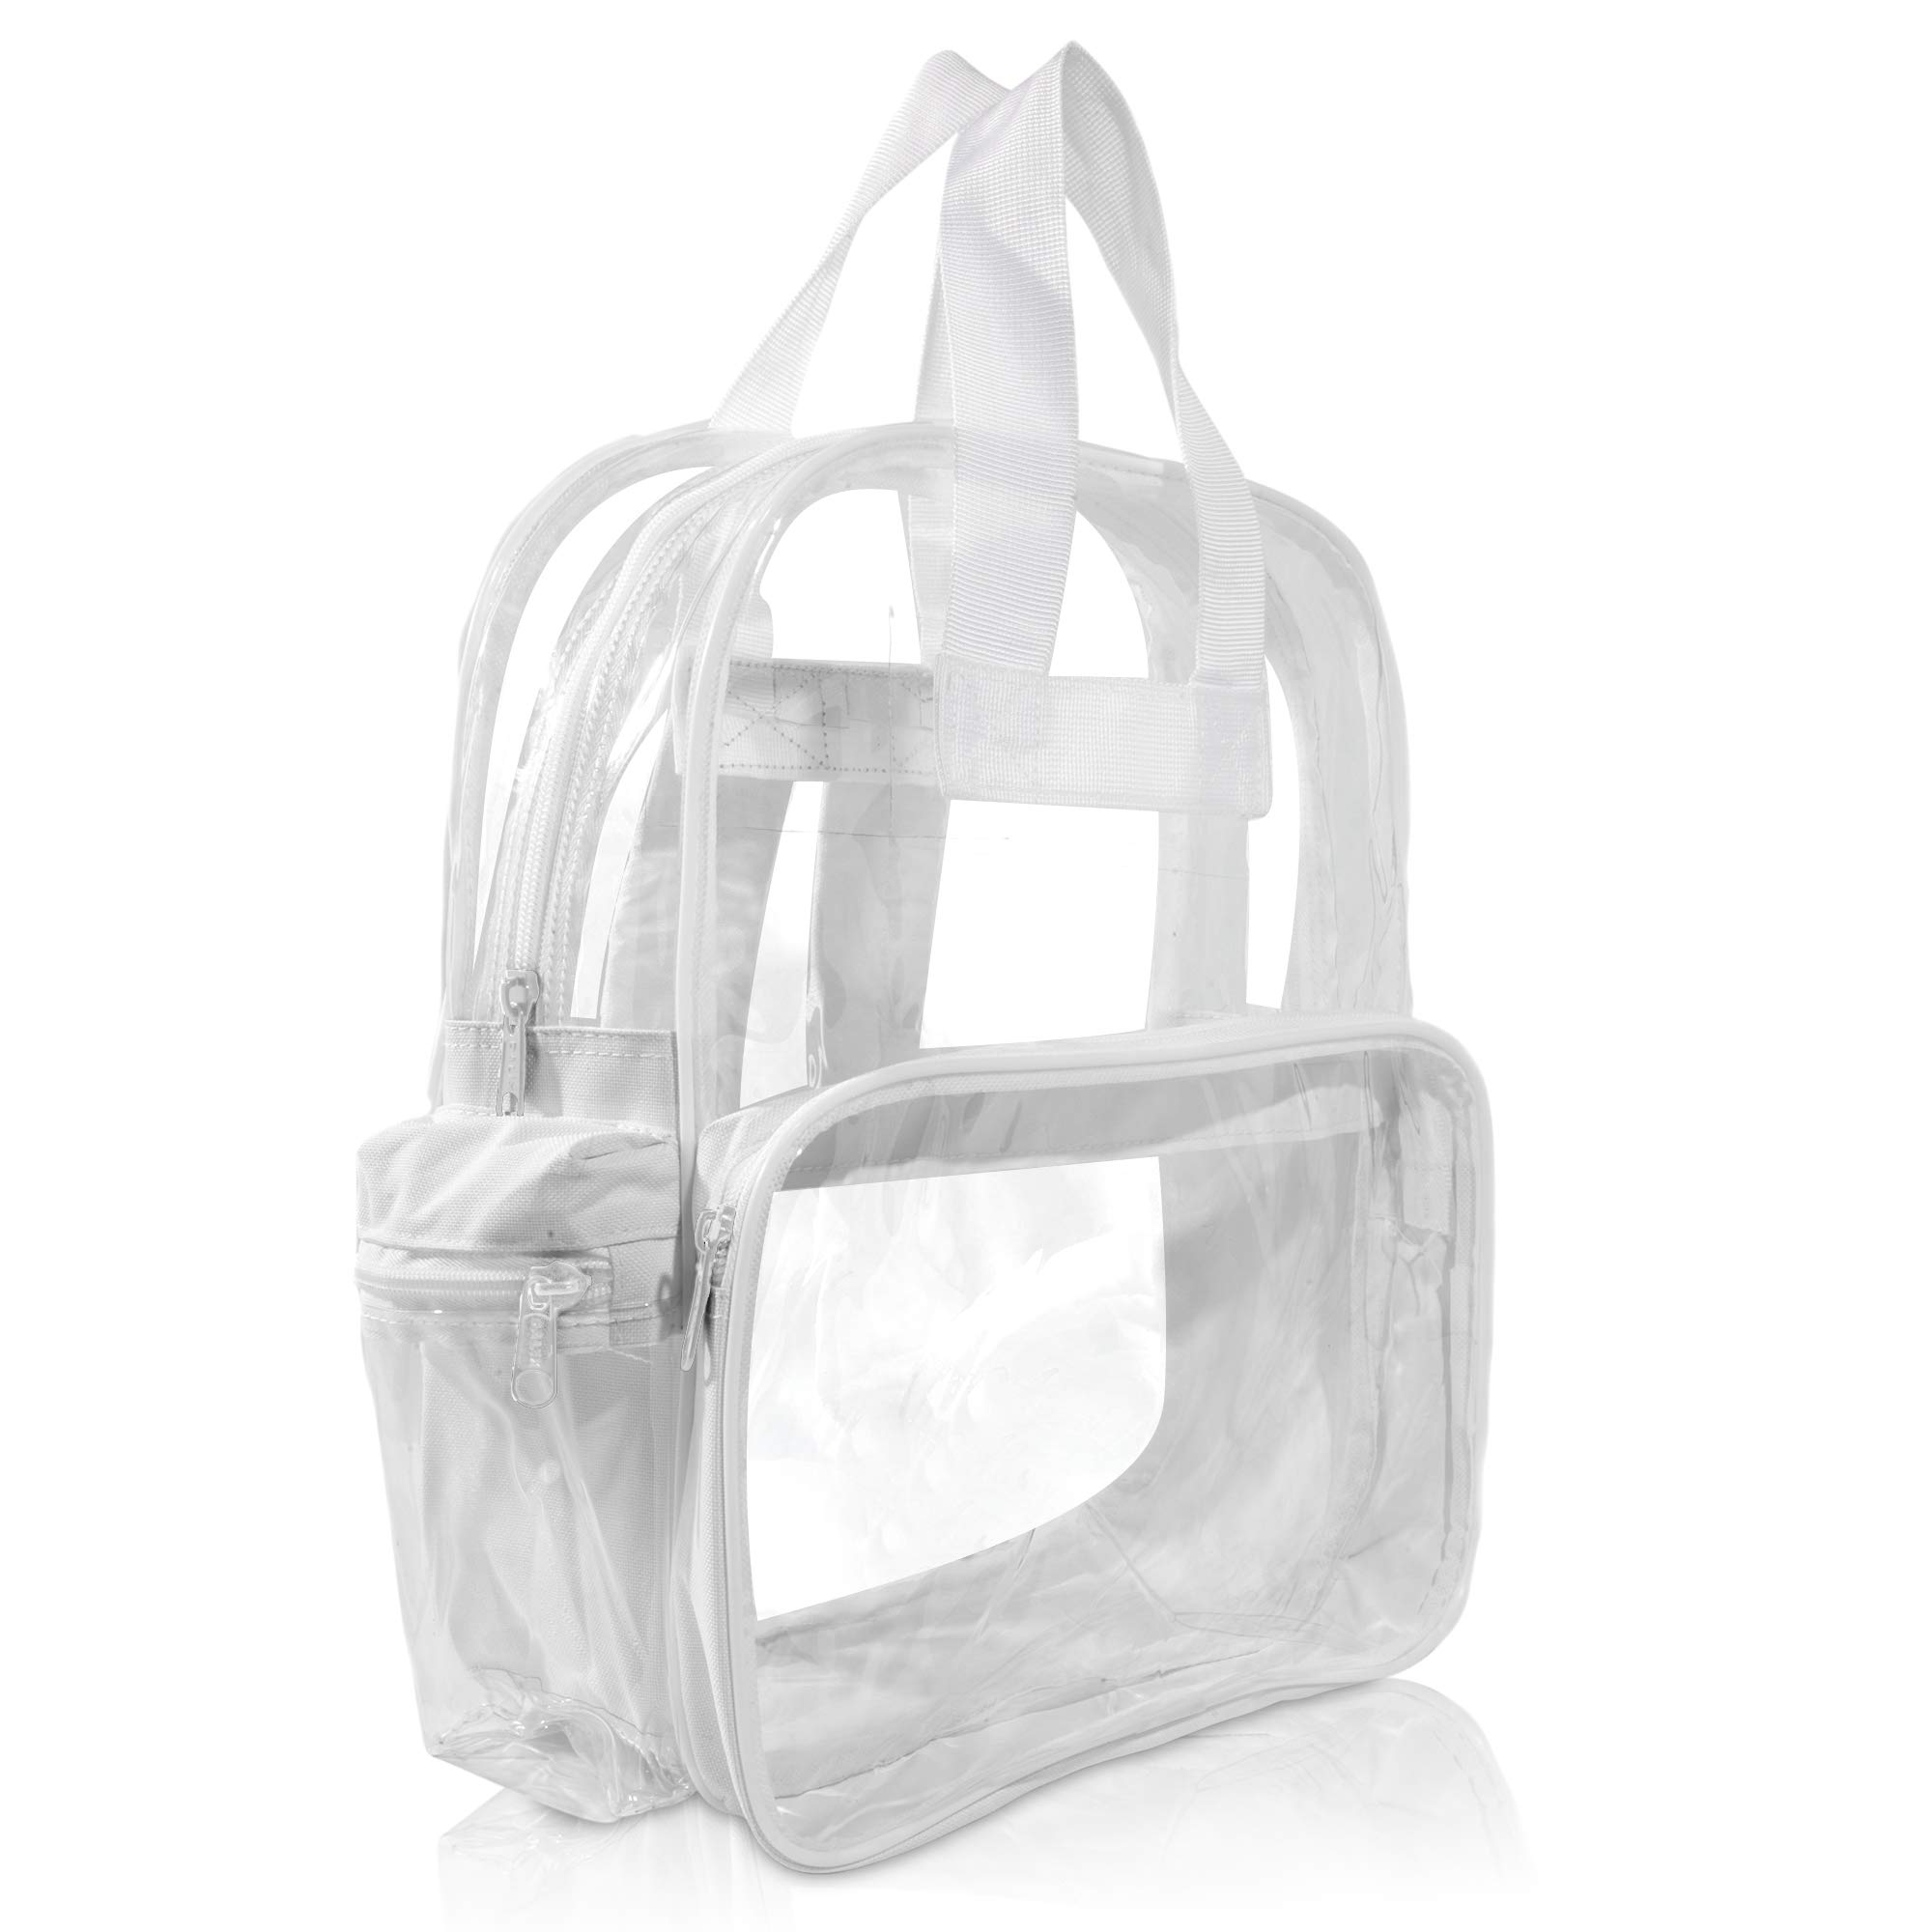 DALIX Clear Backpack for School Transparent Bags Girls Boys White 12 Pack by DALIX